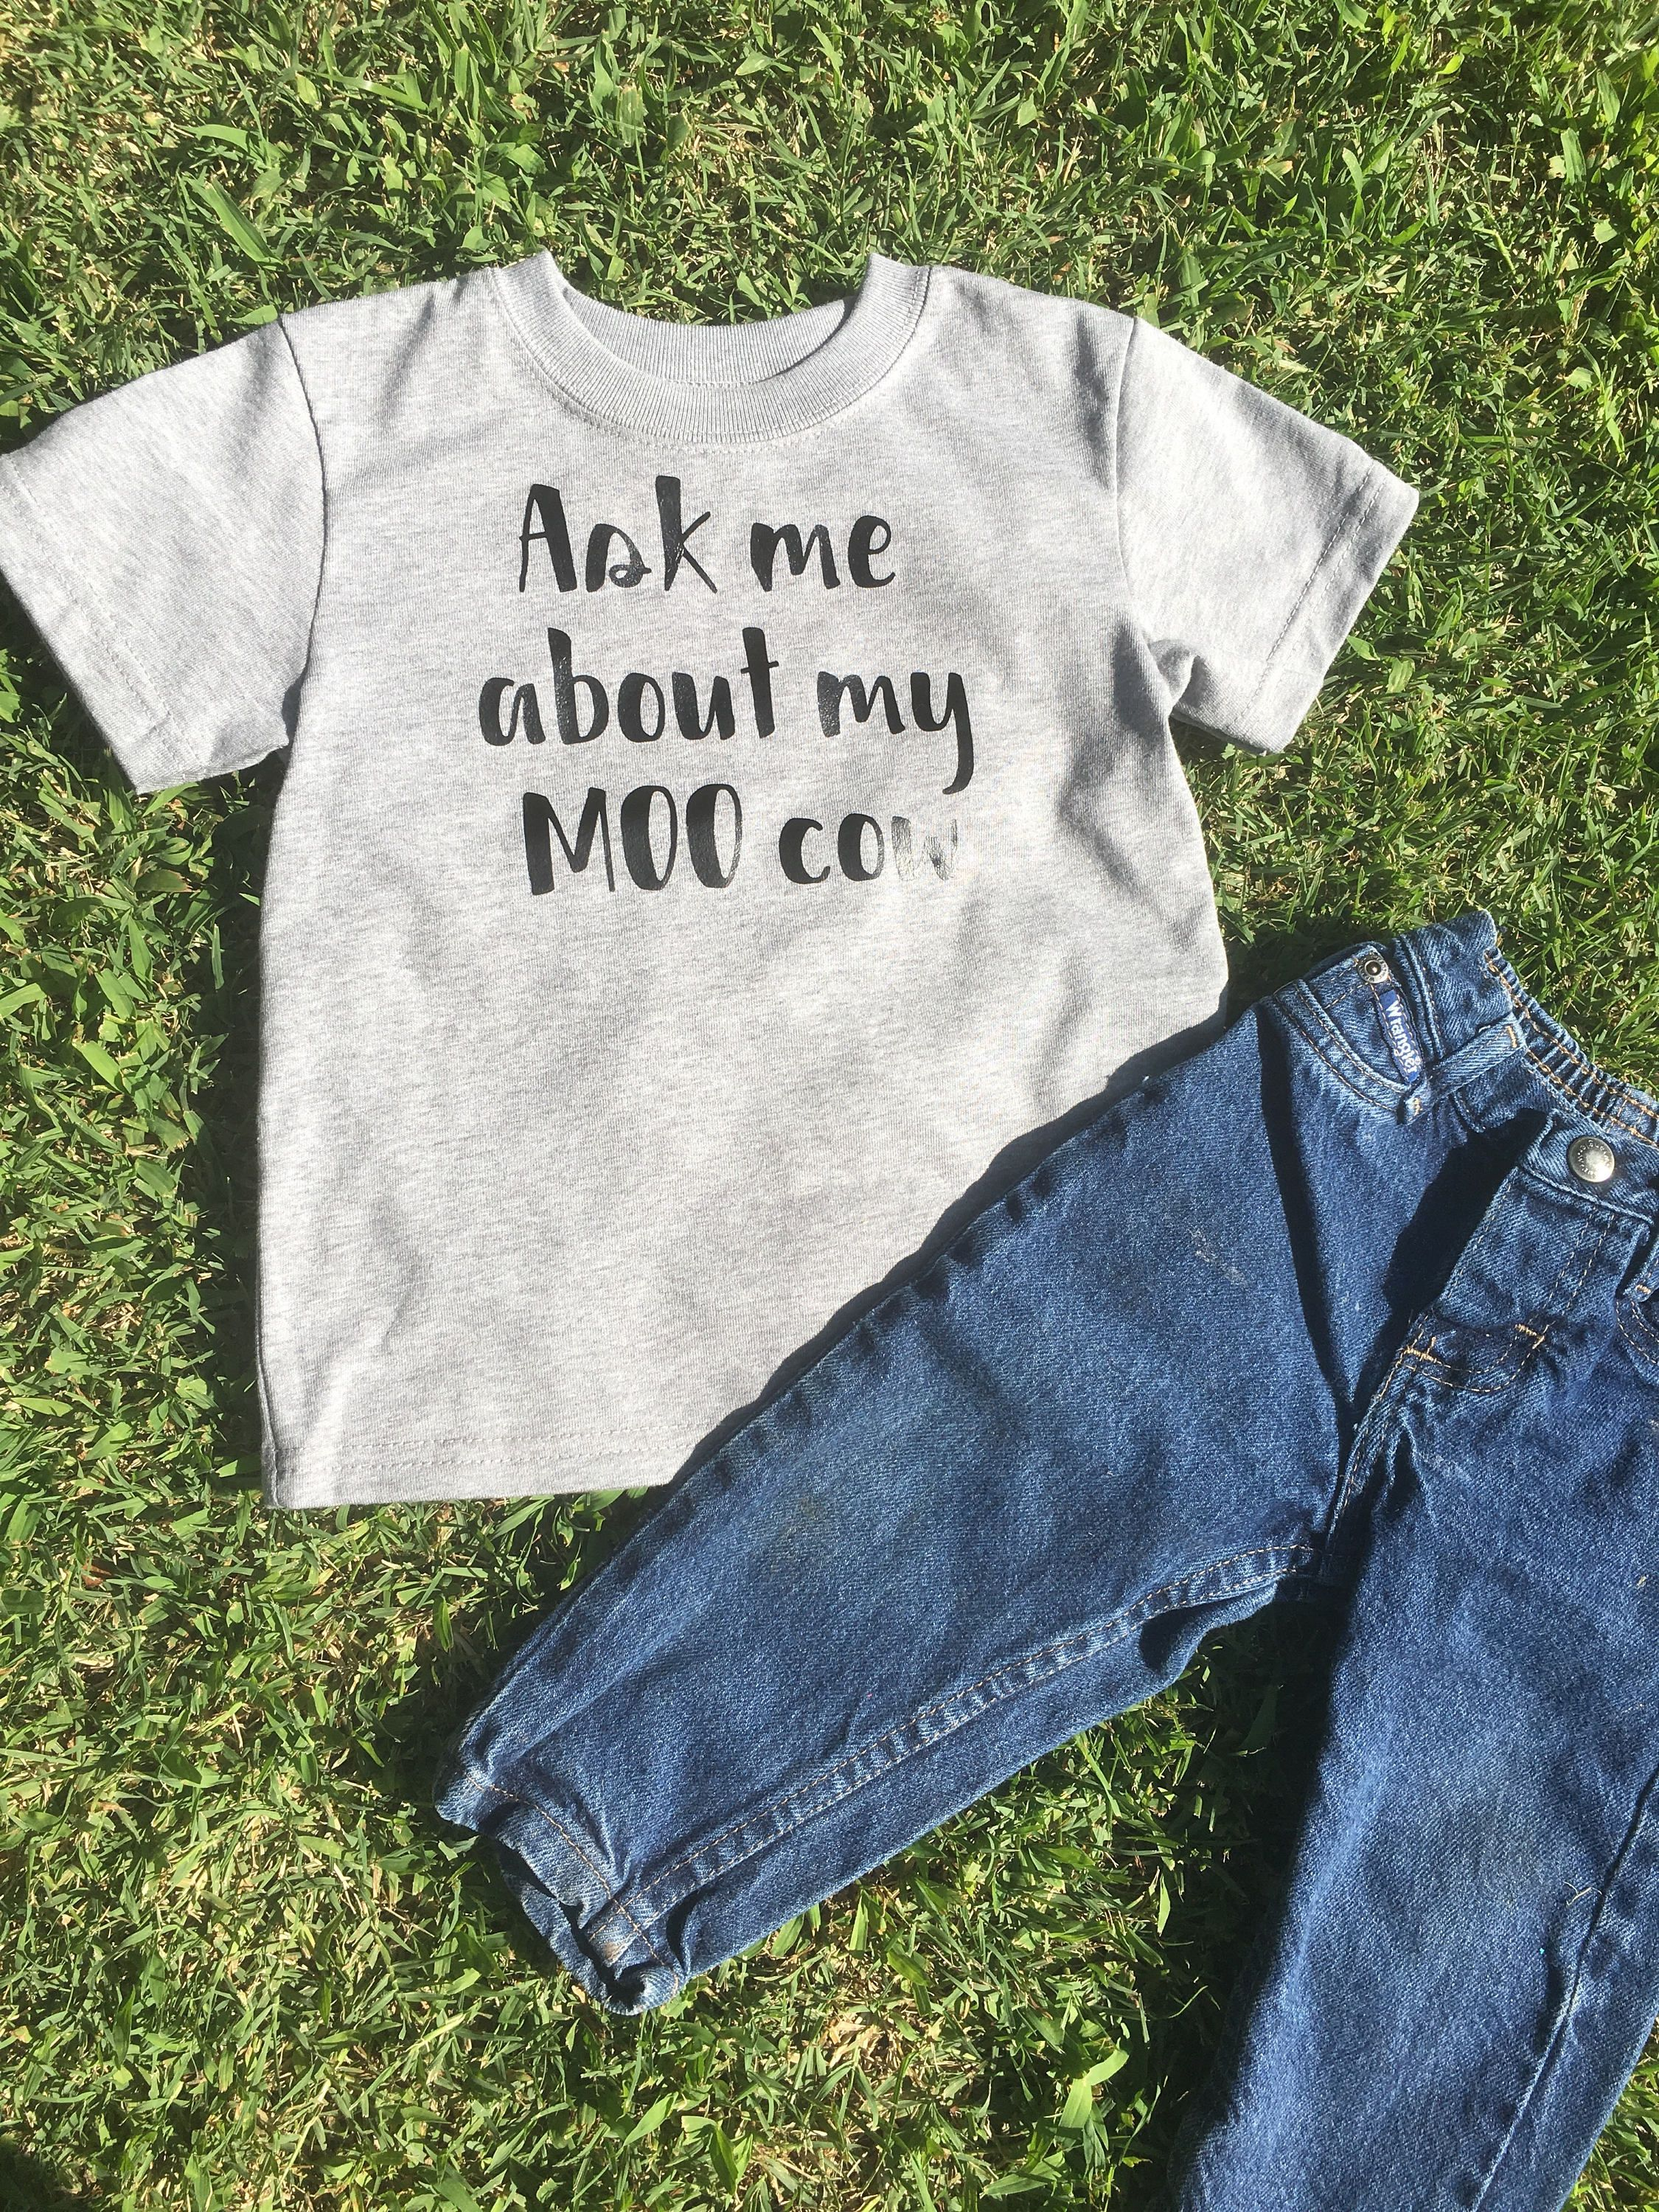 Ask me about my MOO cow! Kids shirt, infant shirt. Cow